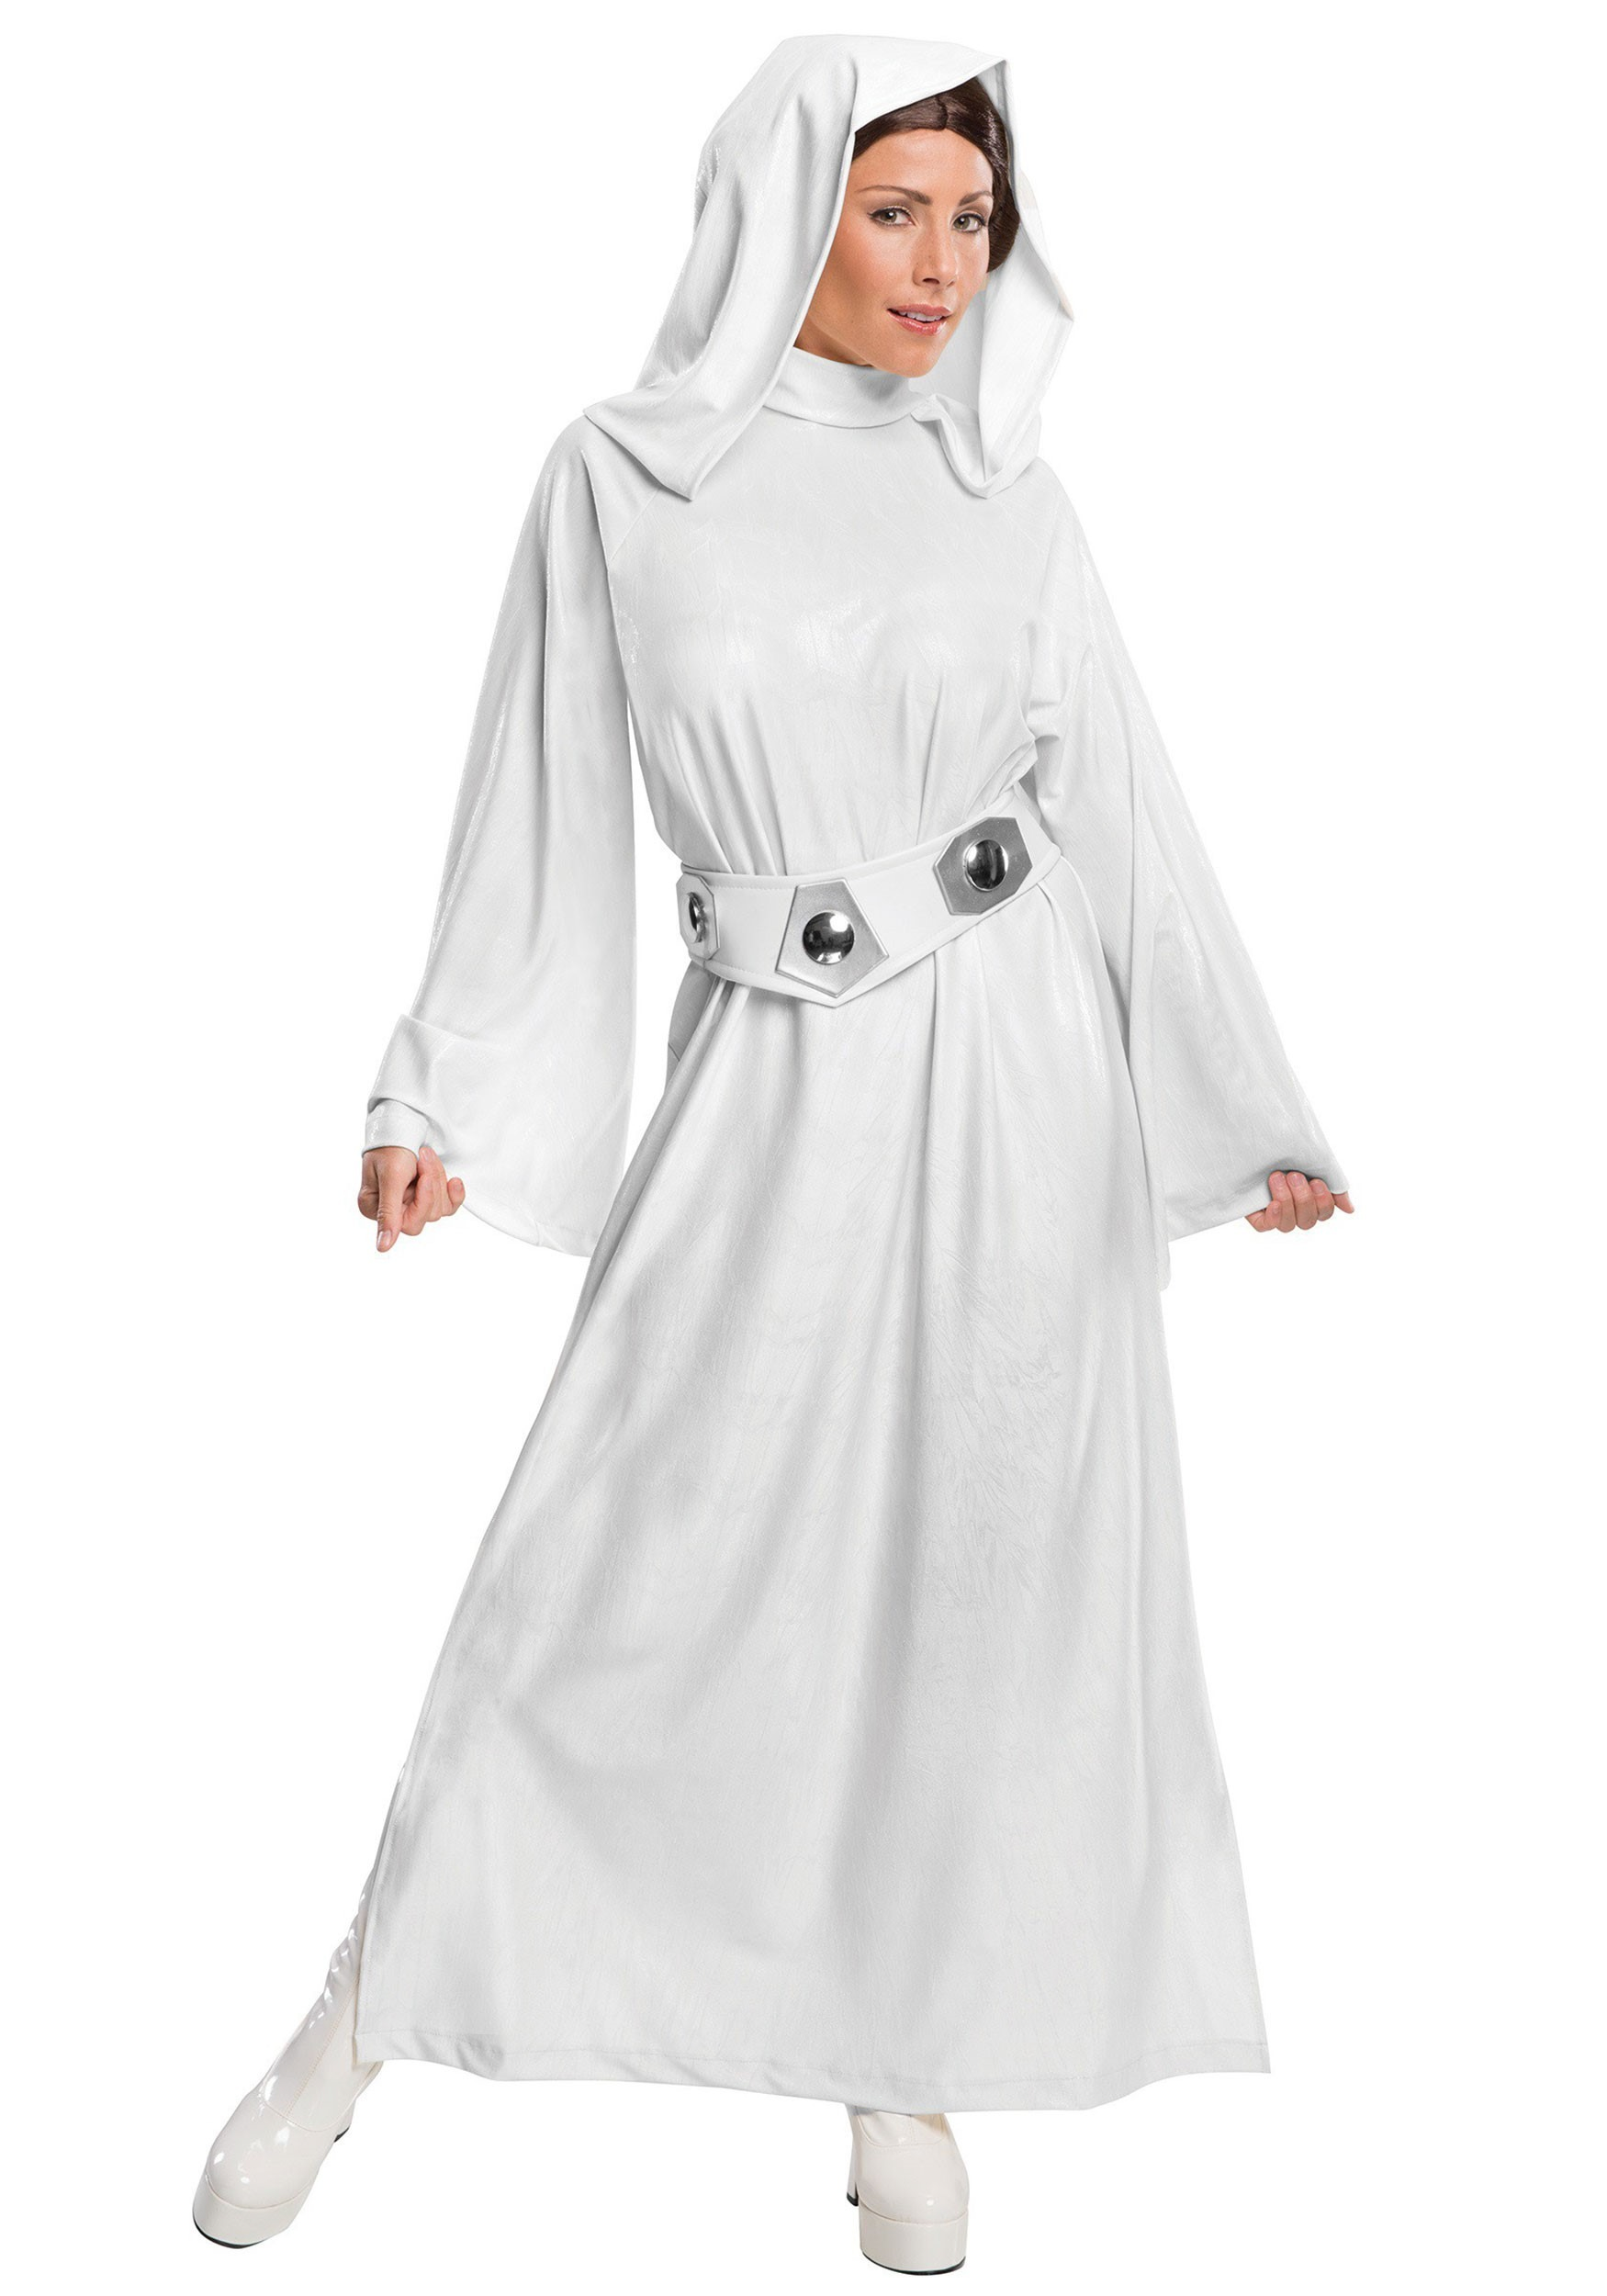 sc 1 st  Halloween Costumes : princess leia han solo costumes  - Germanpascual.Com